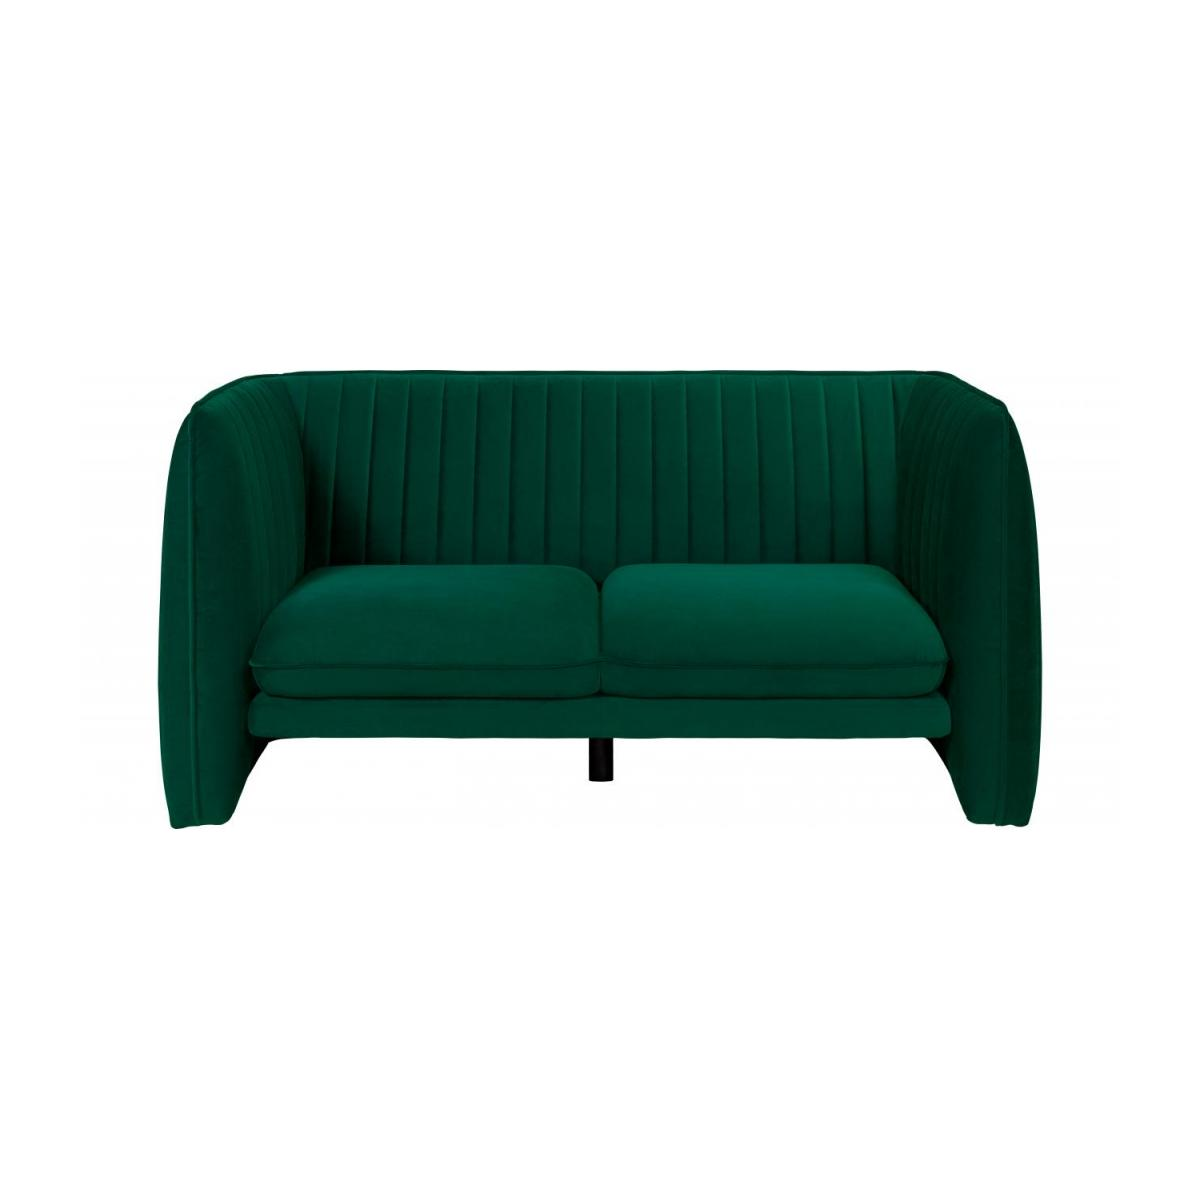 lucas 2 sitzer sofa aus samt gr n design by adrien. Black Bedroom Furniture Sets. Home Design Ideas